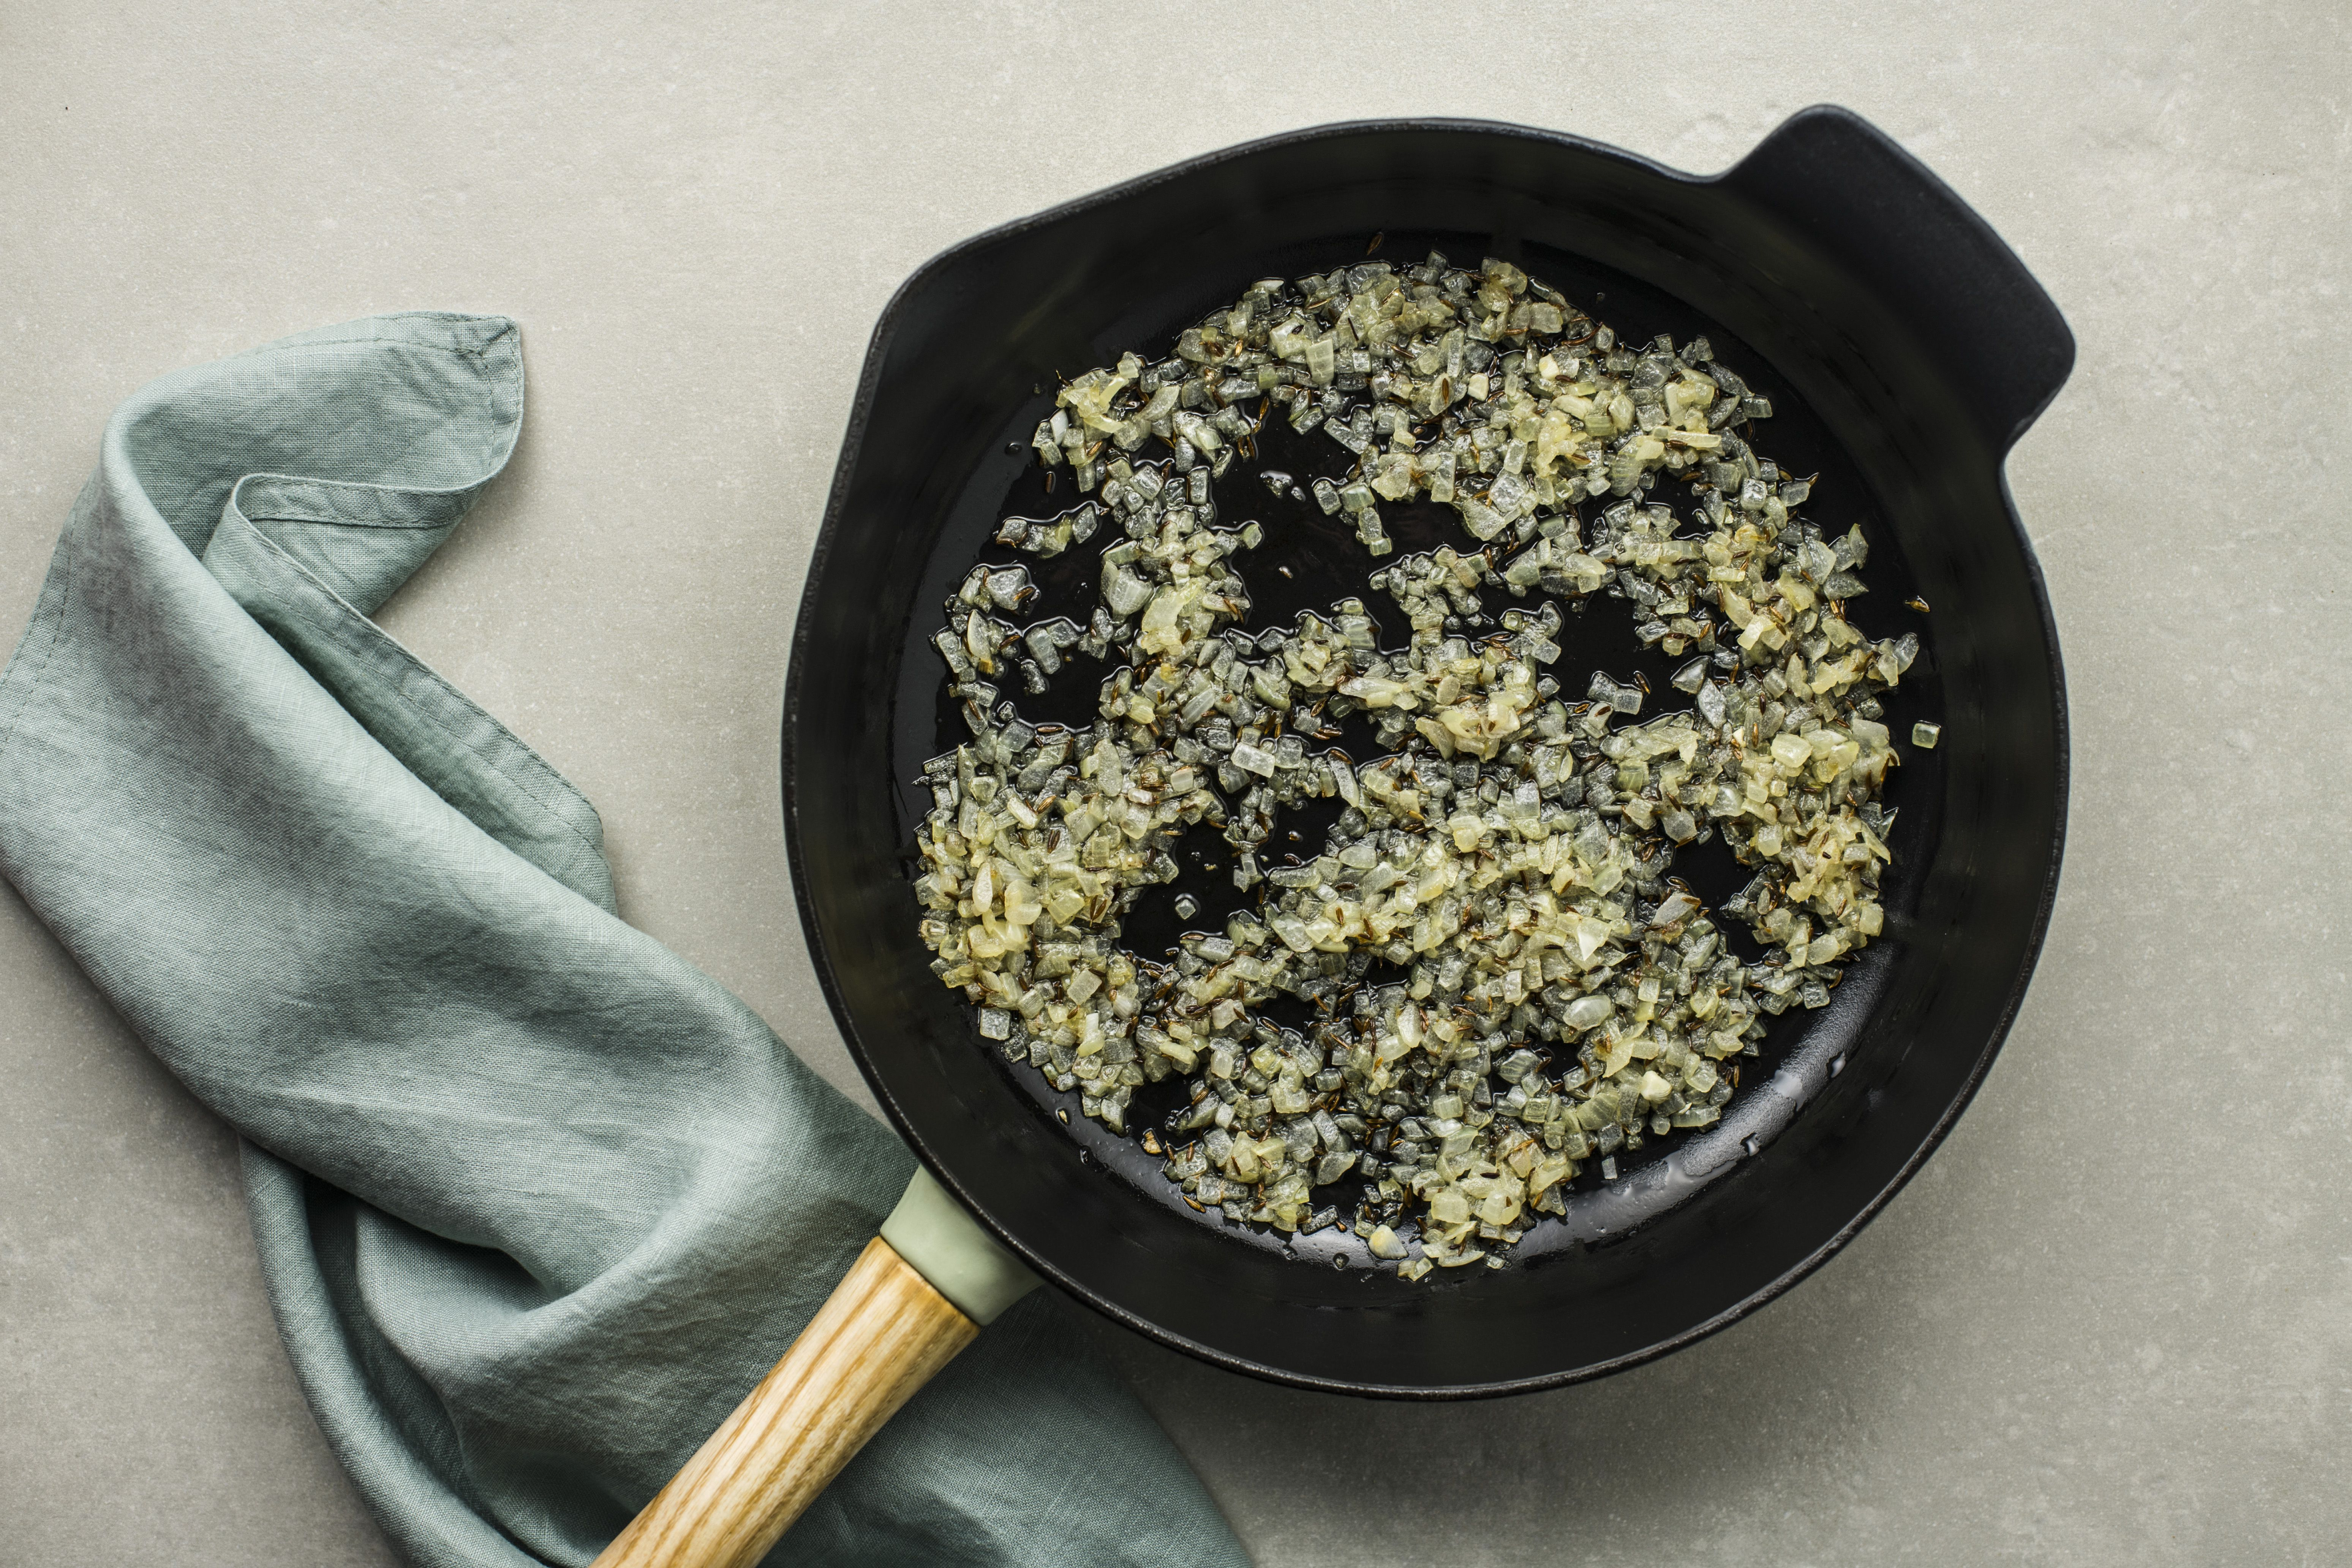 Onions and cumin seeds in frying pan